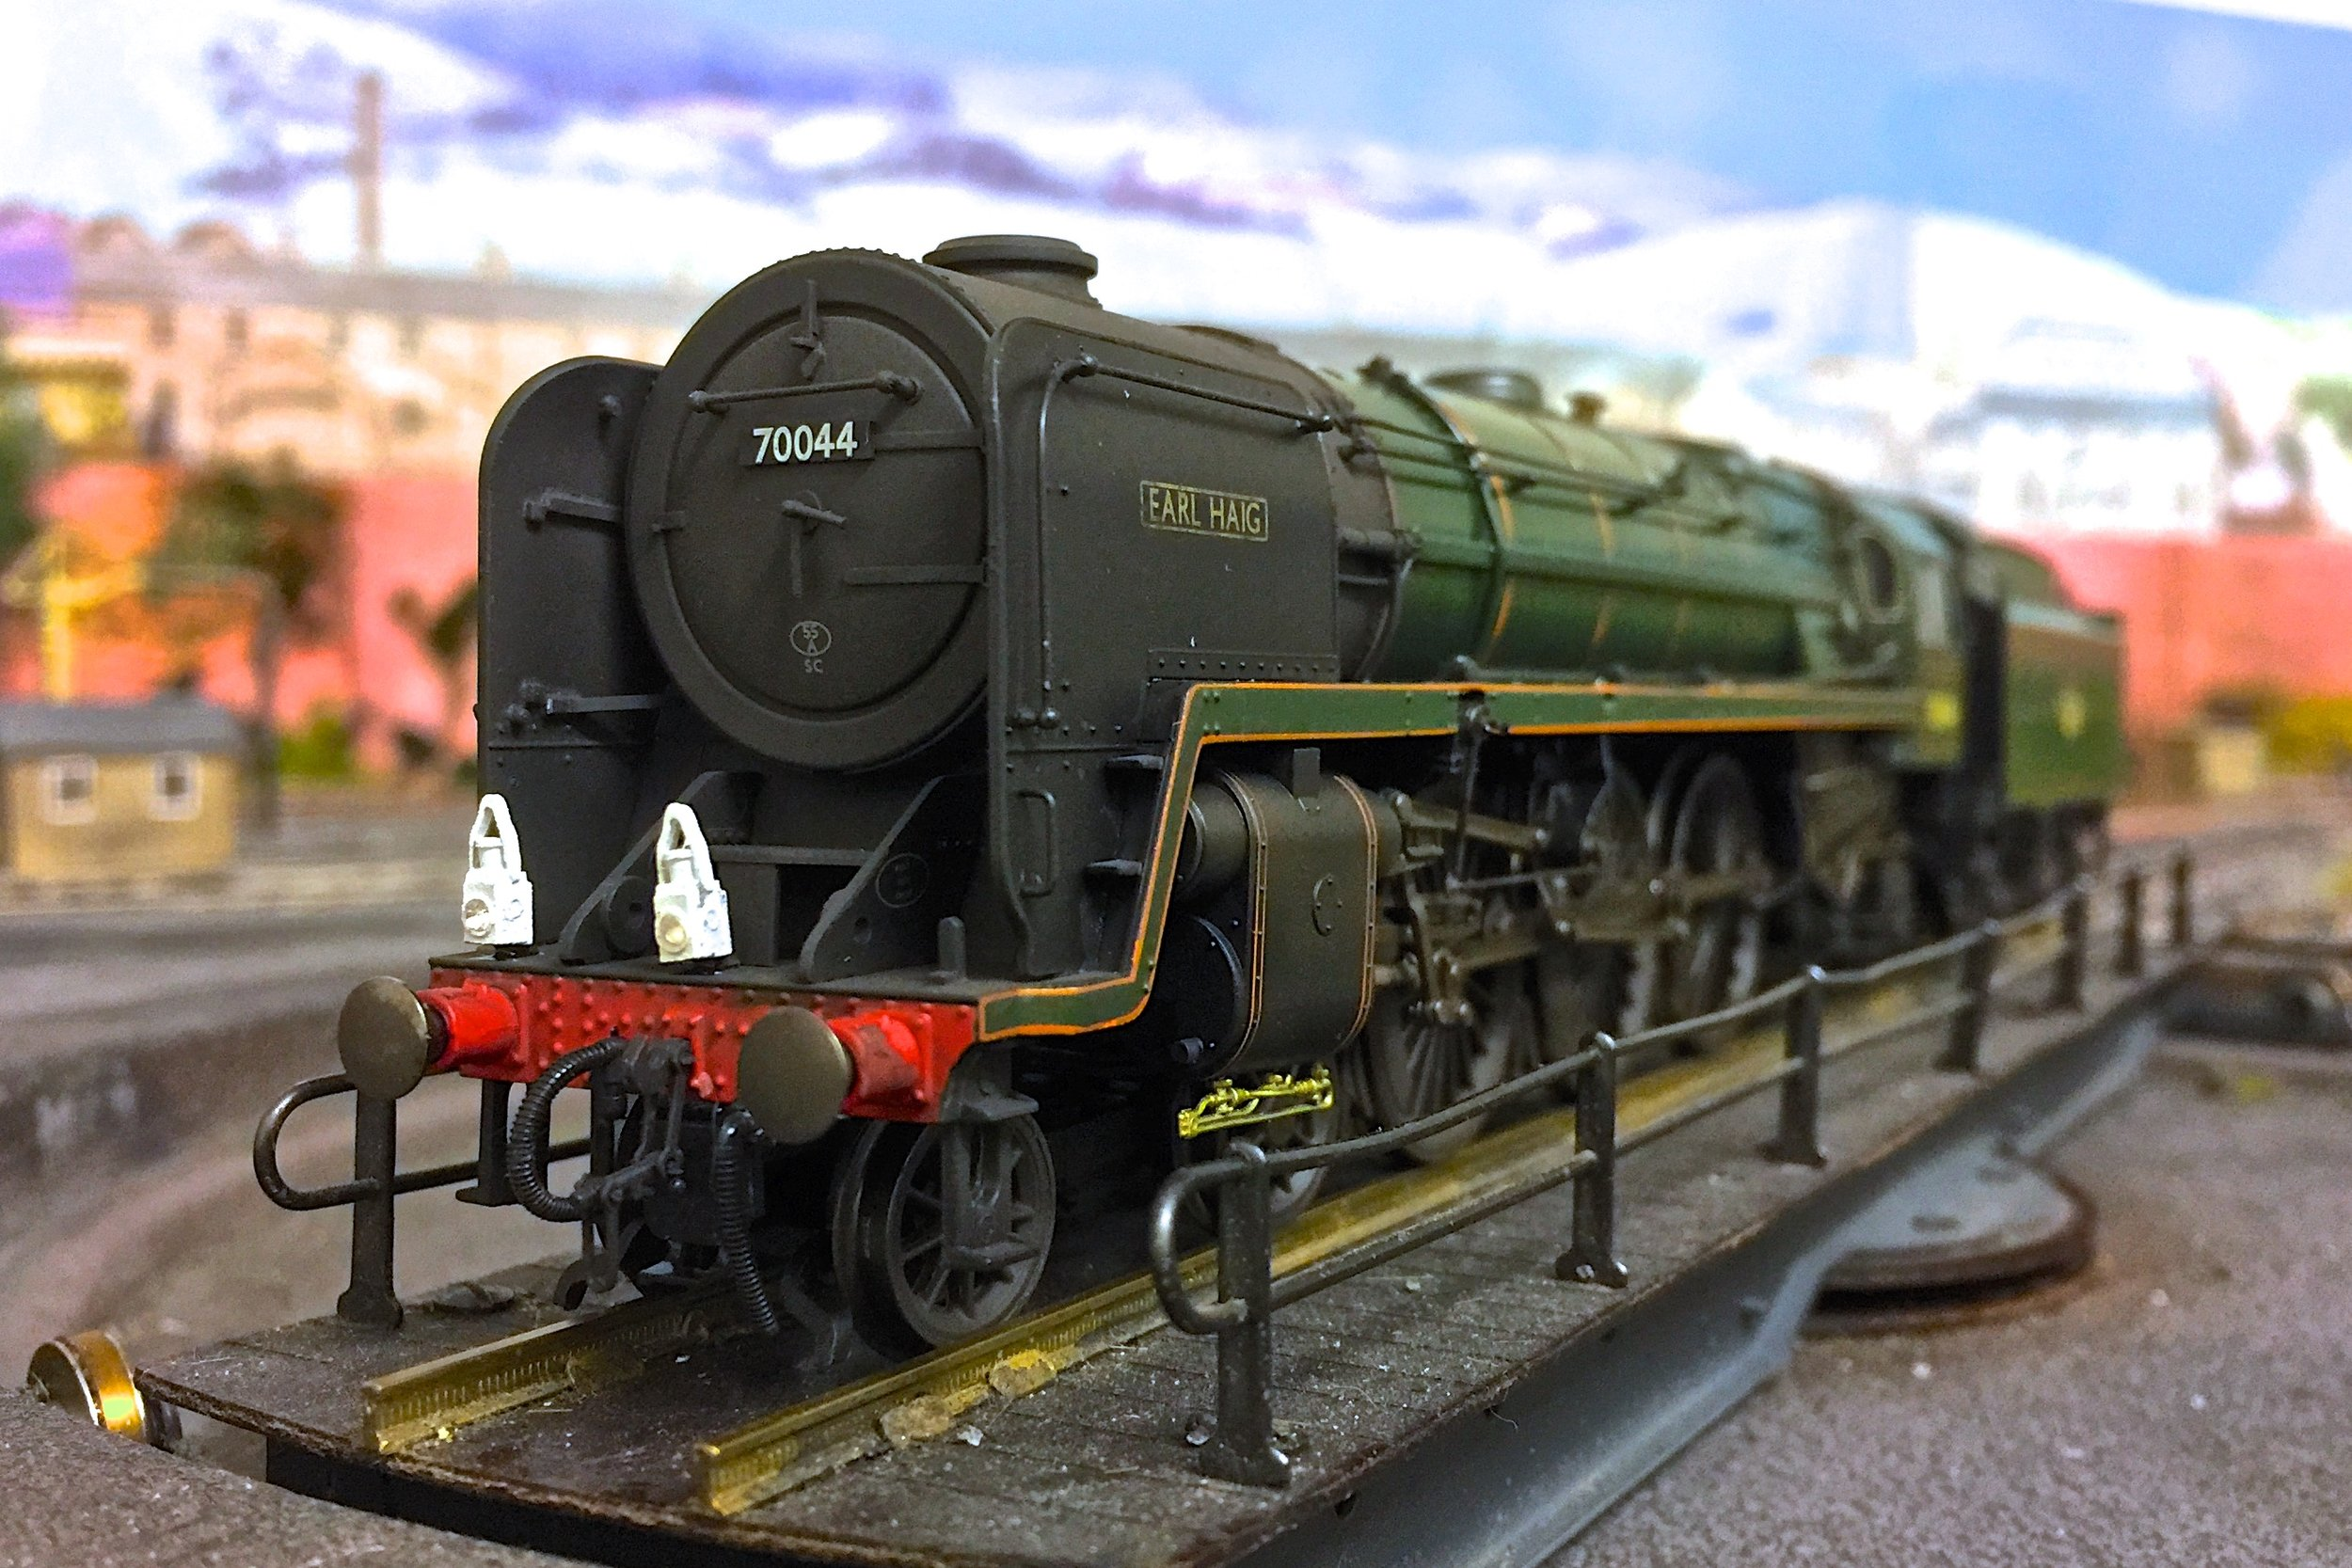 """Number 70044 """"Earl Haig"""", weathered buy Scott Rhodes, photograph by Gwion Rhys Davies."""